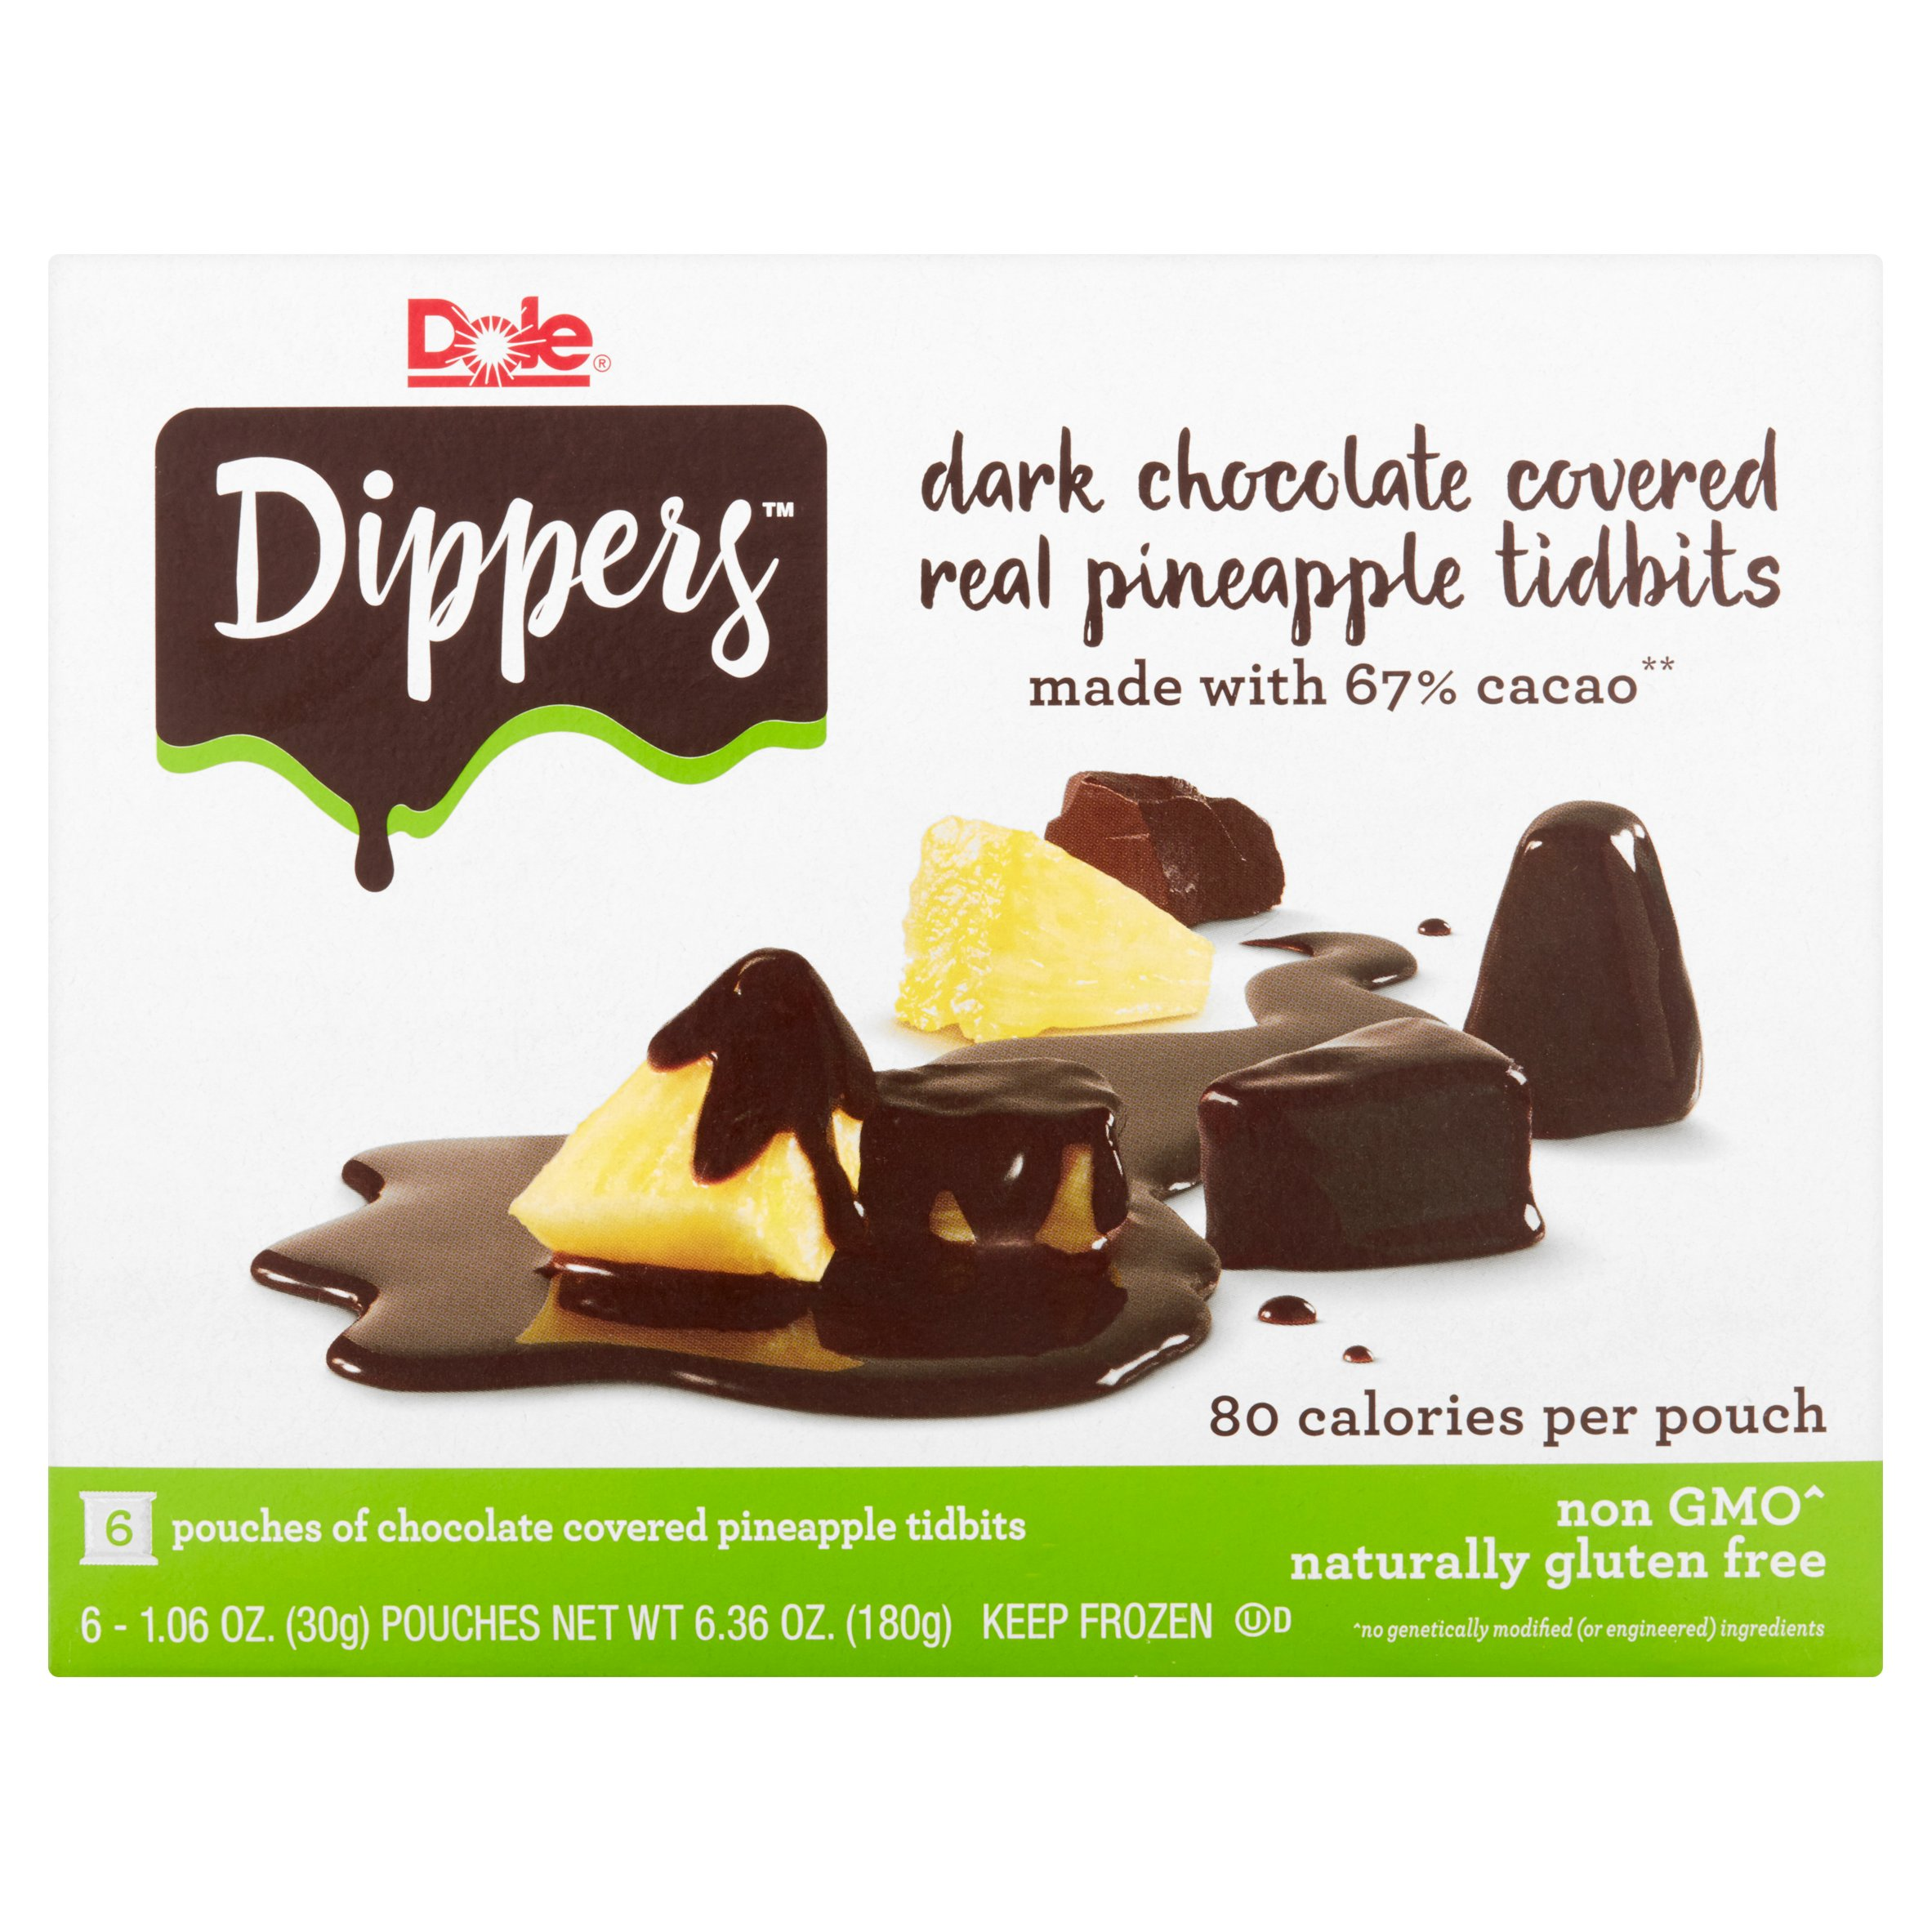 Dole Pineapple Dippers Pineapple Tidbits Covered in Dark Chocolate, 1.06 oz, 6 ct